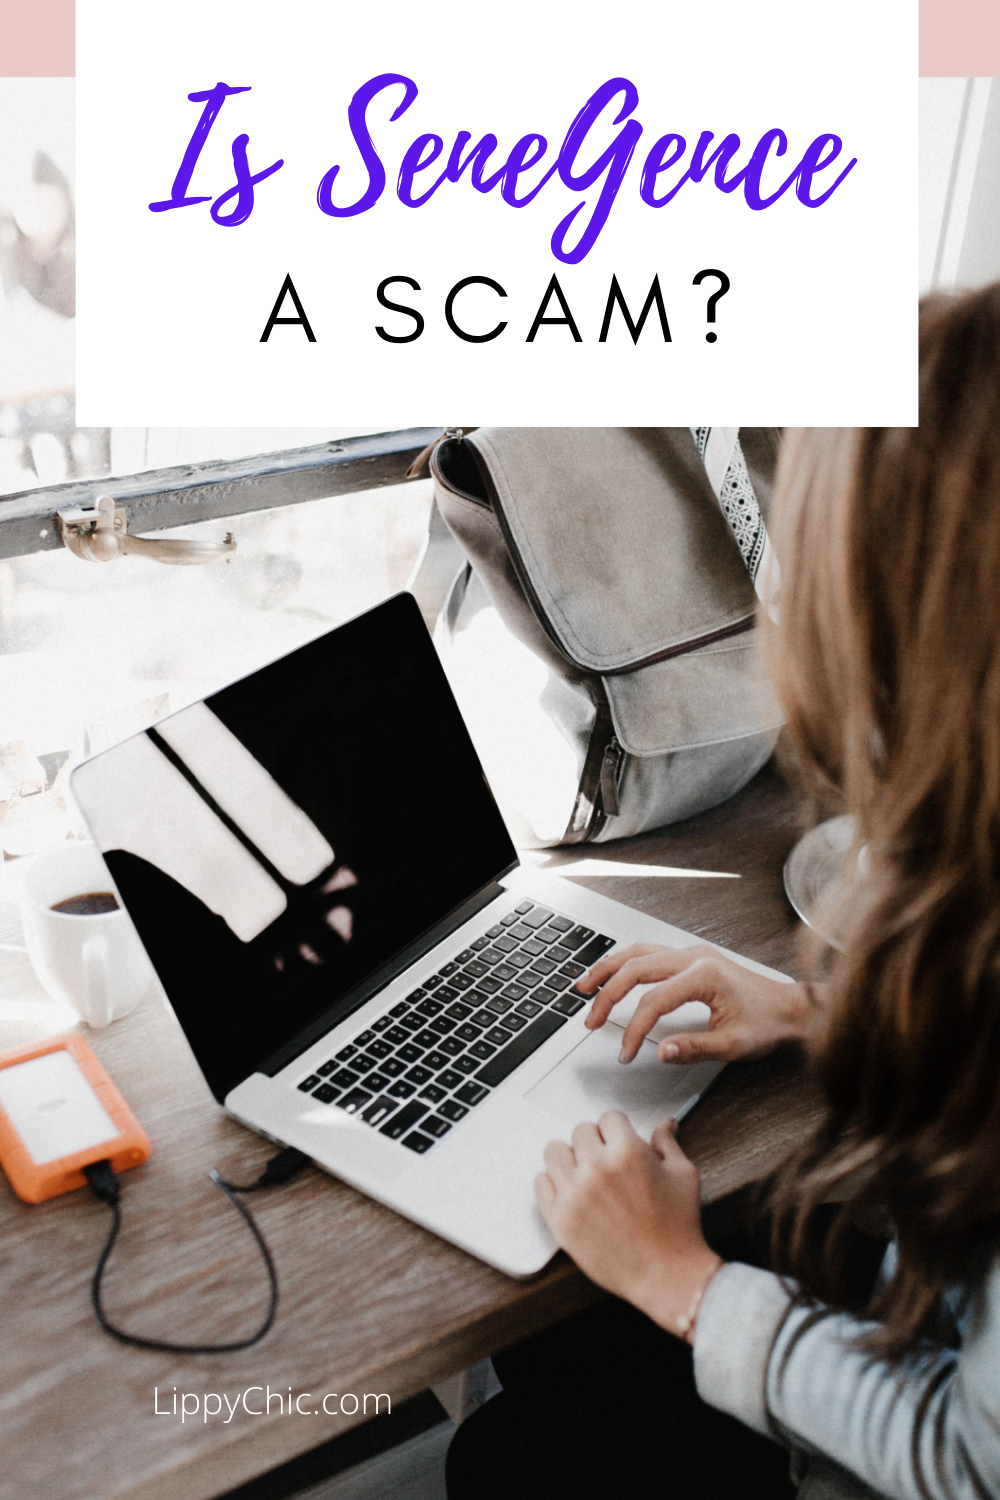 Is SeneGence a scam?